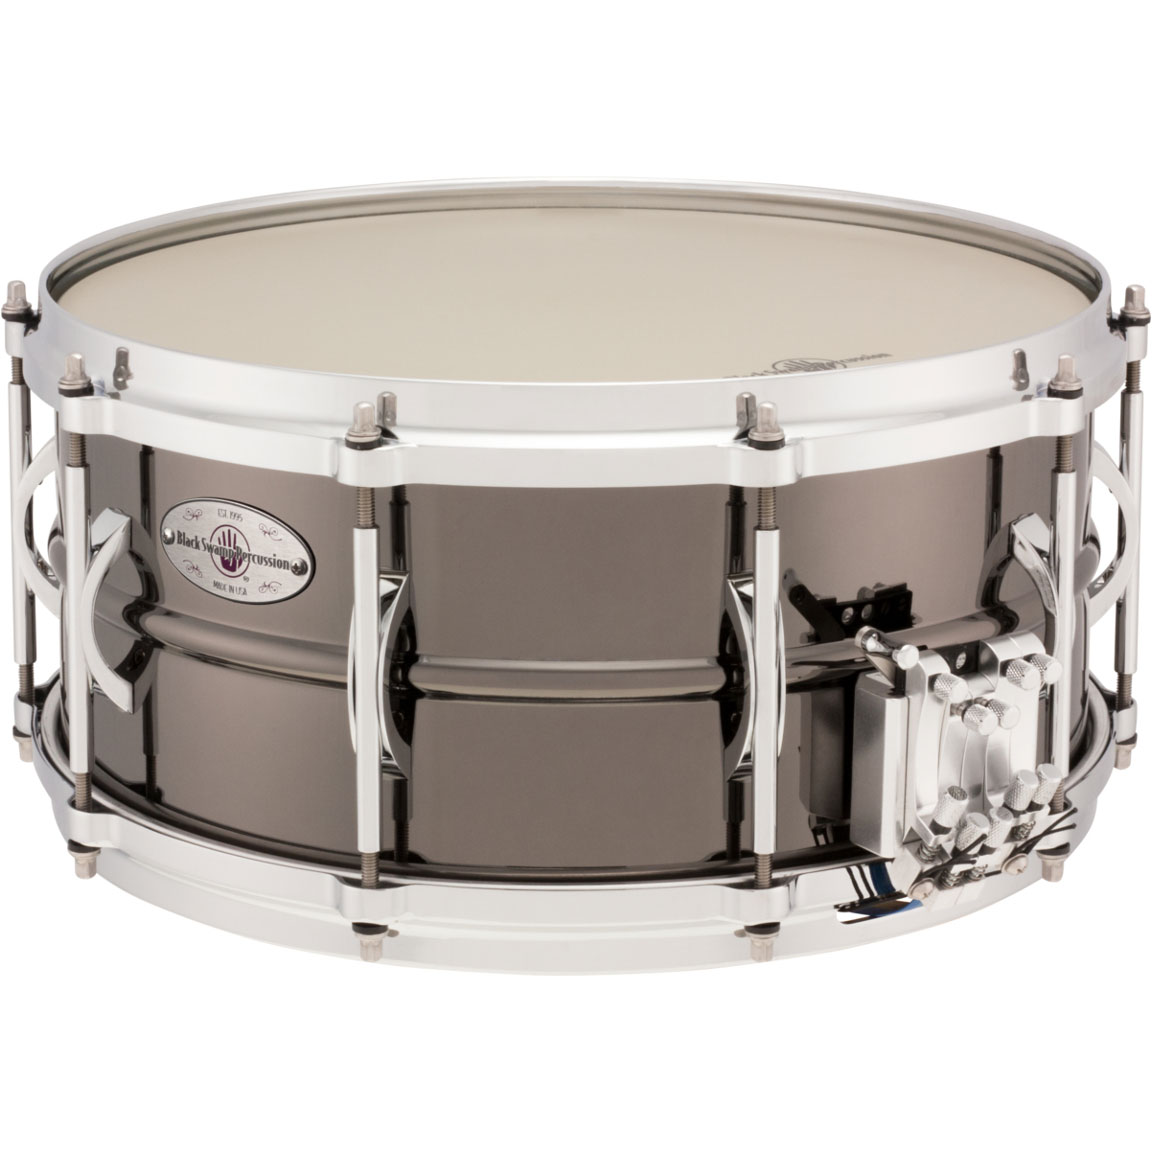 "Black Swamp 6.5"" x 14"" Multisonic Brass Concert Snare Drum"